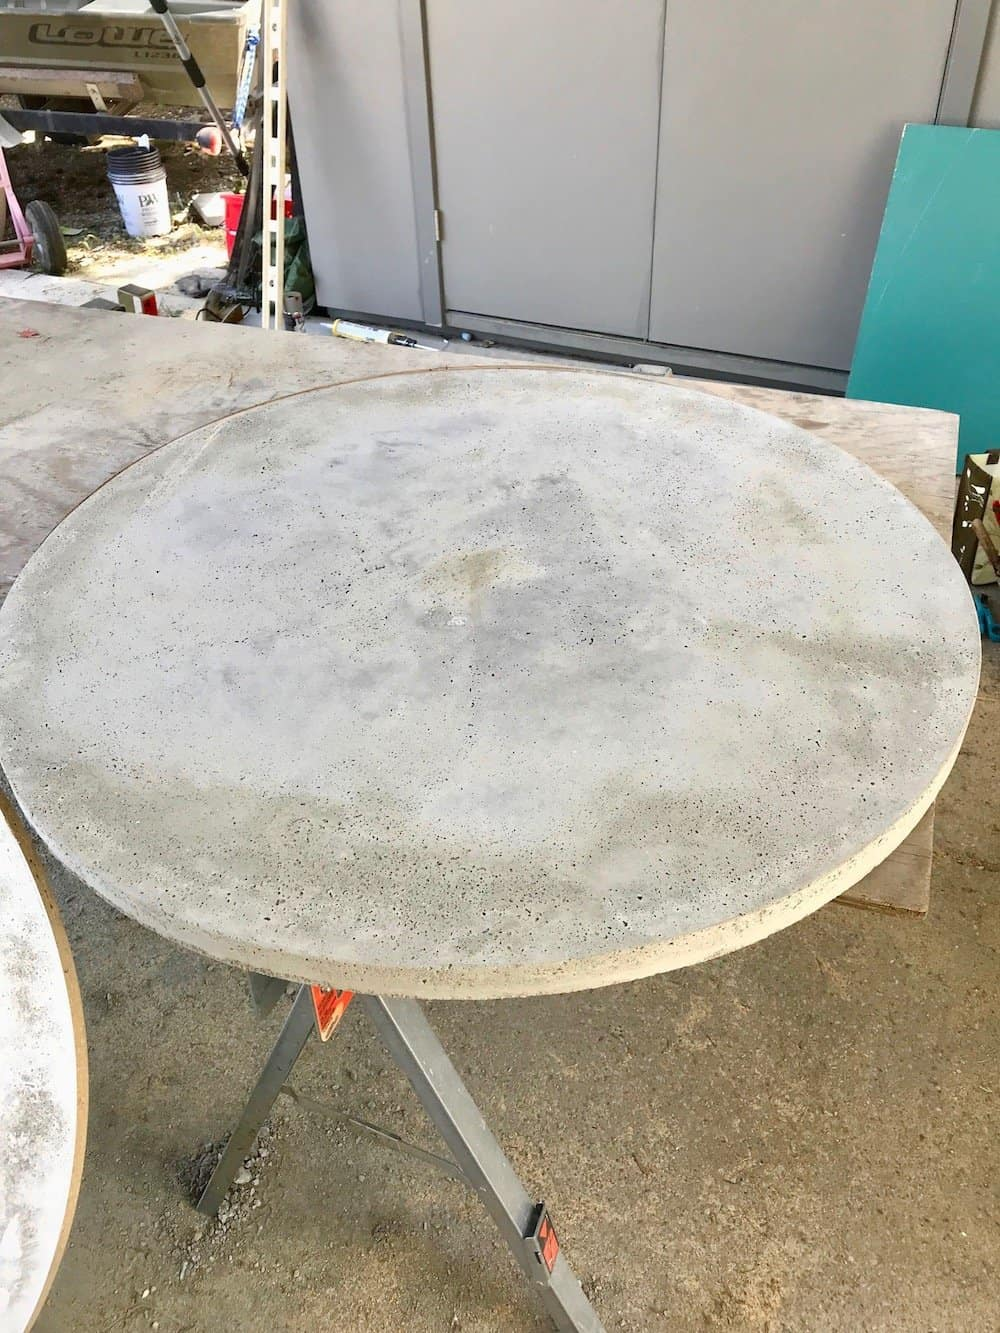 Round dining table top made of concrete on a workbench